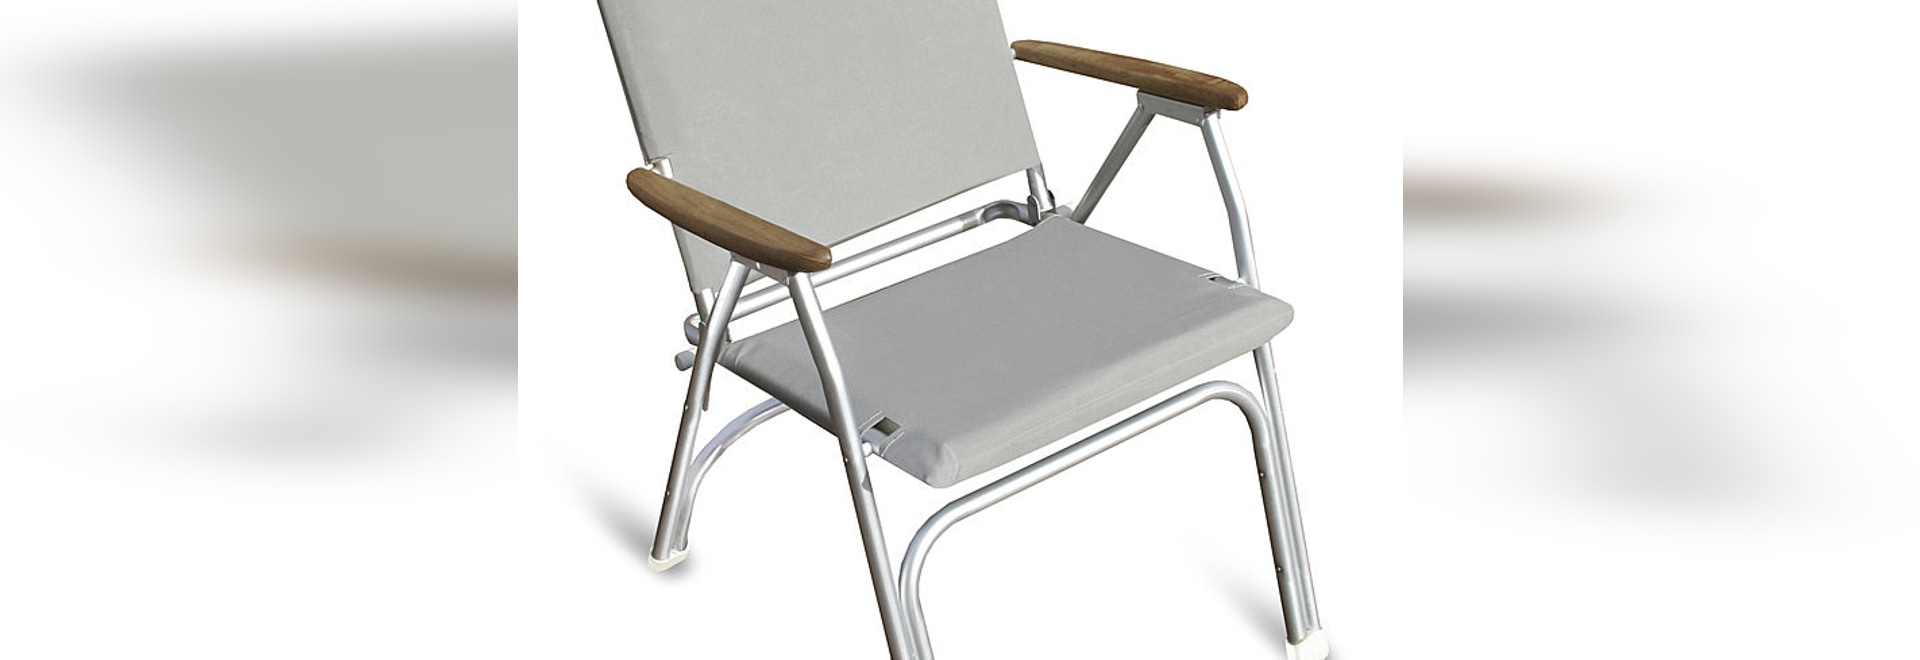 "M100LPG ""Deluxe"" Folding Aluminium Deck Chair for Added Comfort!"